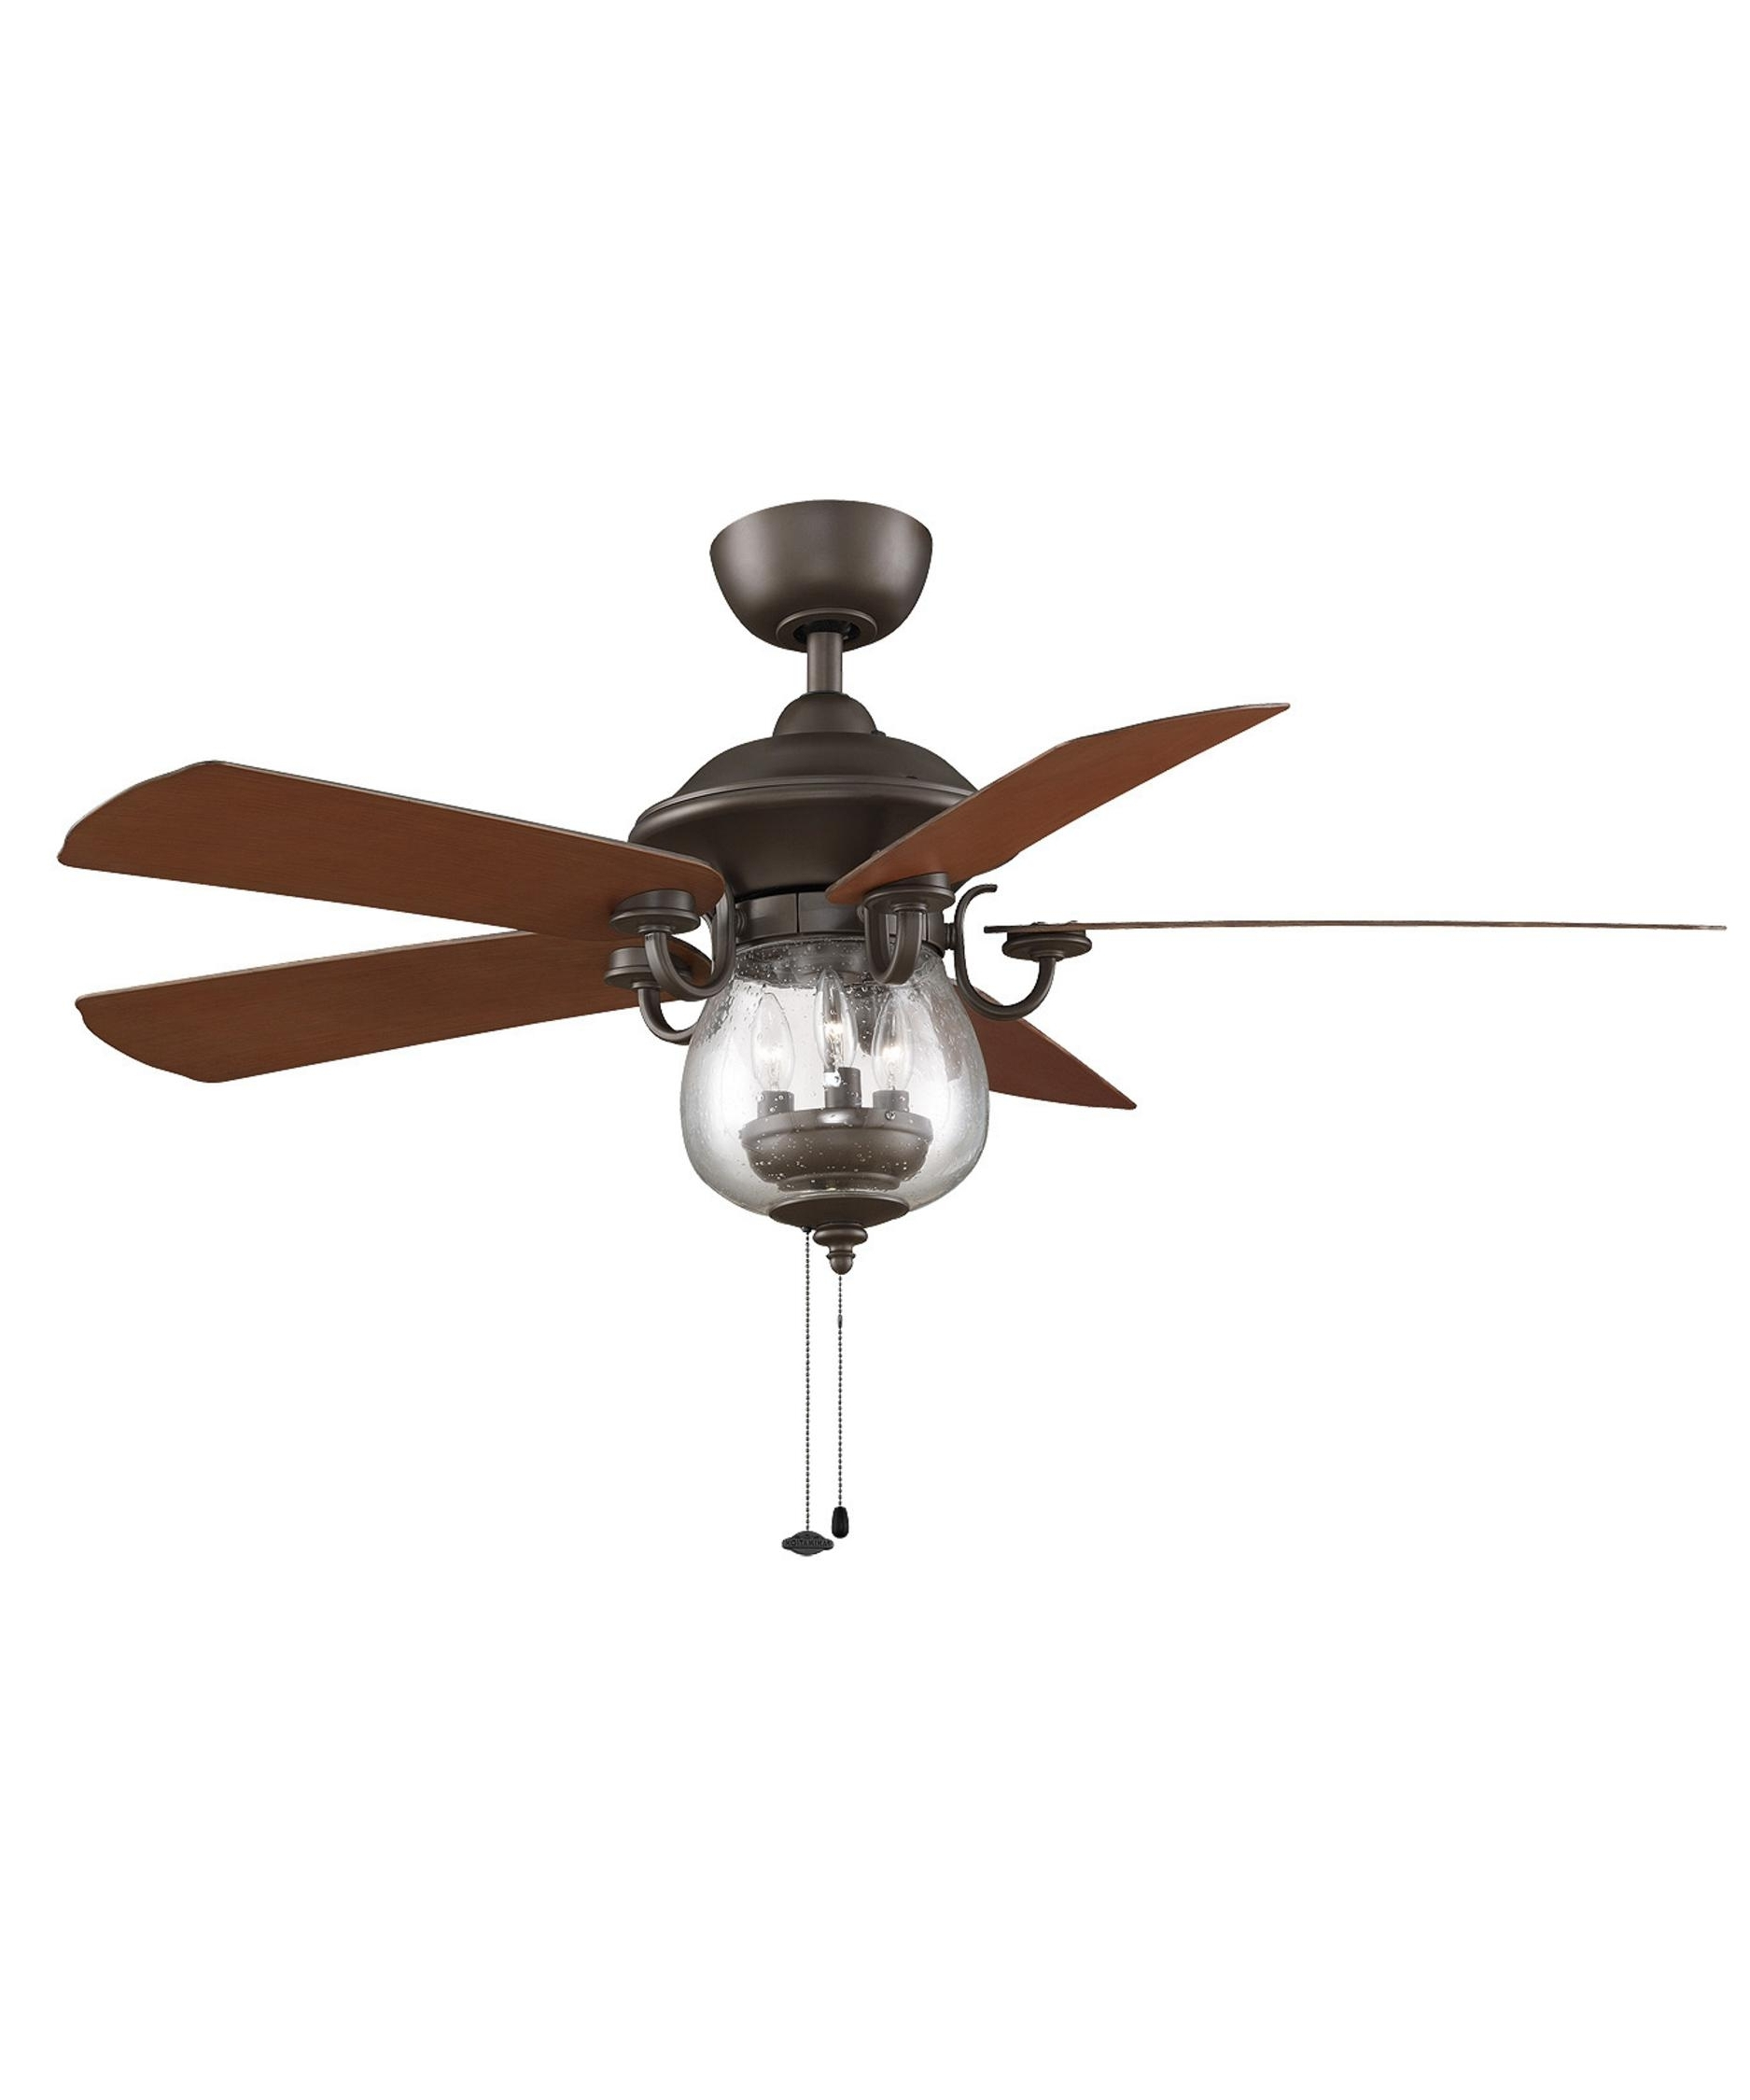 Sevenstonesinc Pertaining To Outdoor Ceiling Fans And Lights (View 18 of 20)